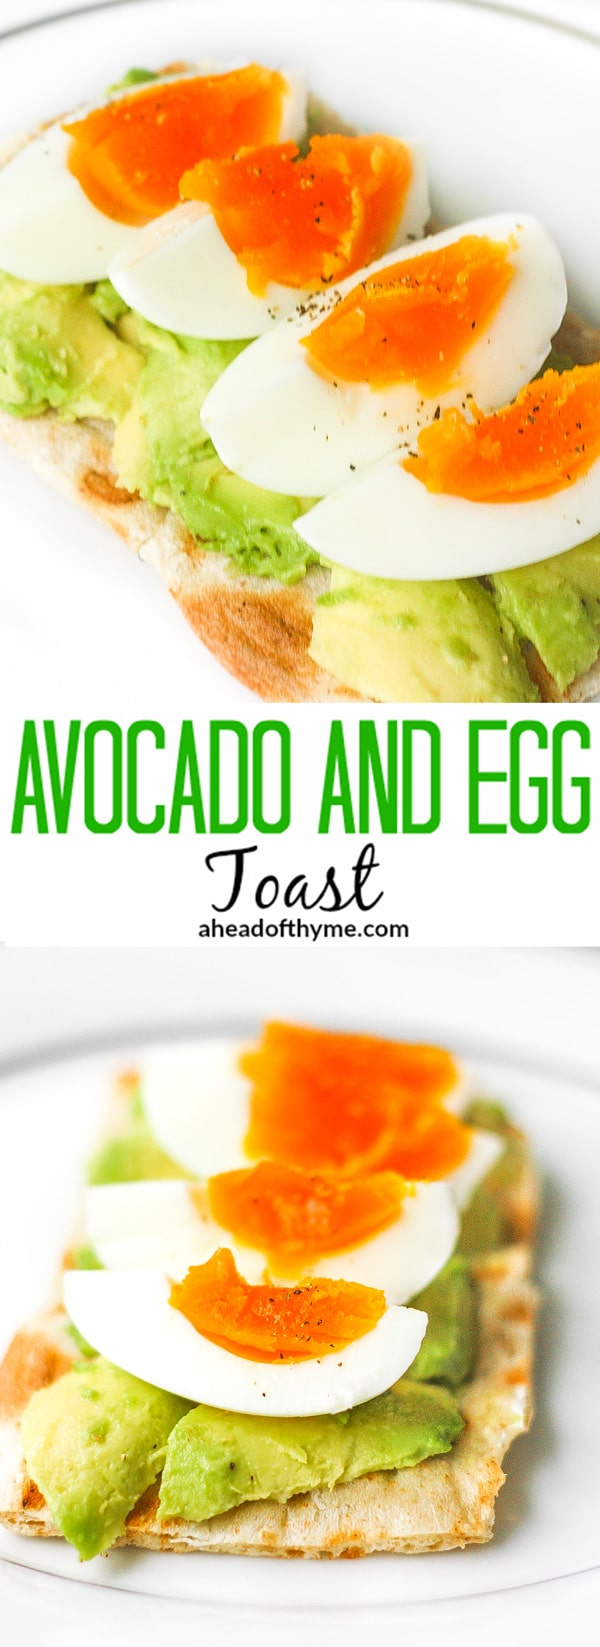 Avocado and Egg Toast: Don't have a lot of time for breakfast? Try this quick and easy recipe for a delicious and healthy breakfast | aheadofthyme.com